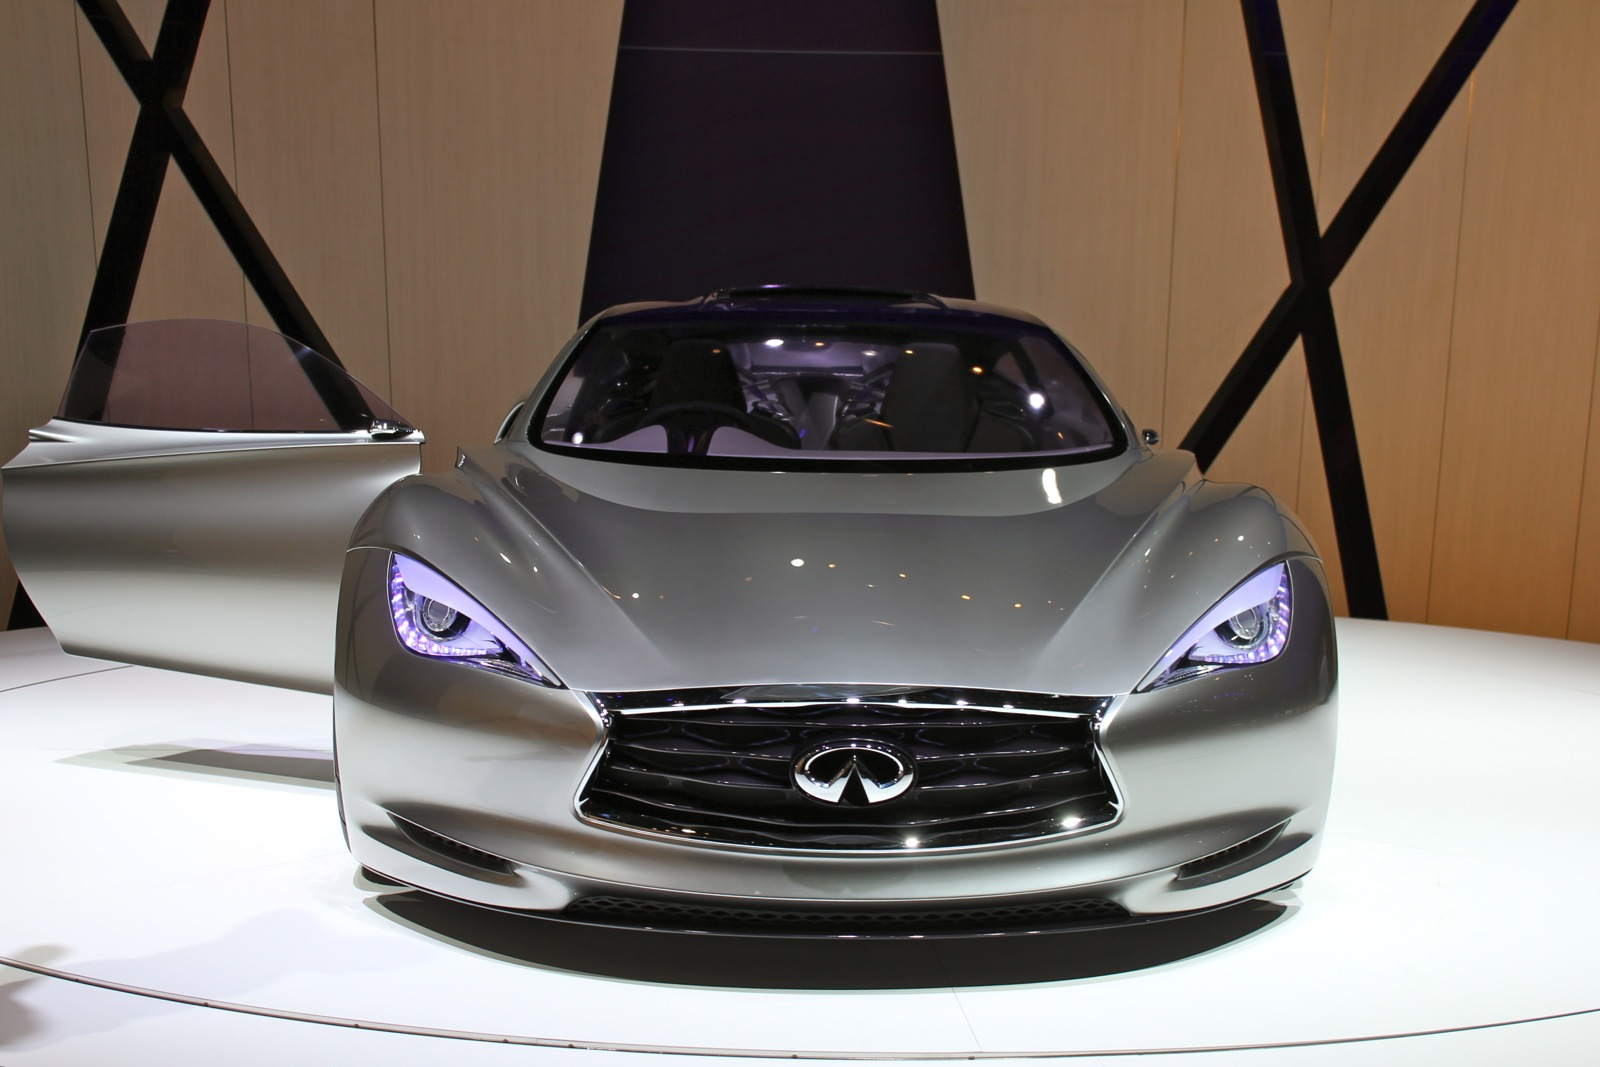 Infiniti Emerg E Makes U S Debut At Pebble Beach Concours